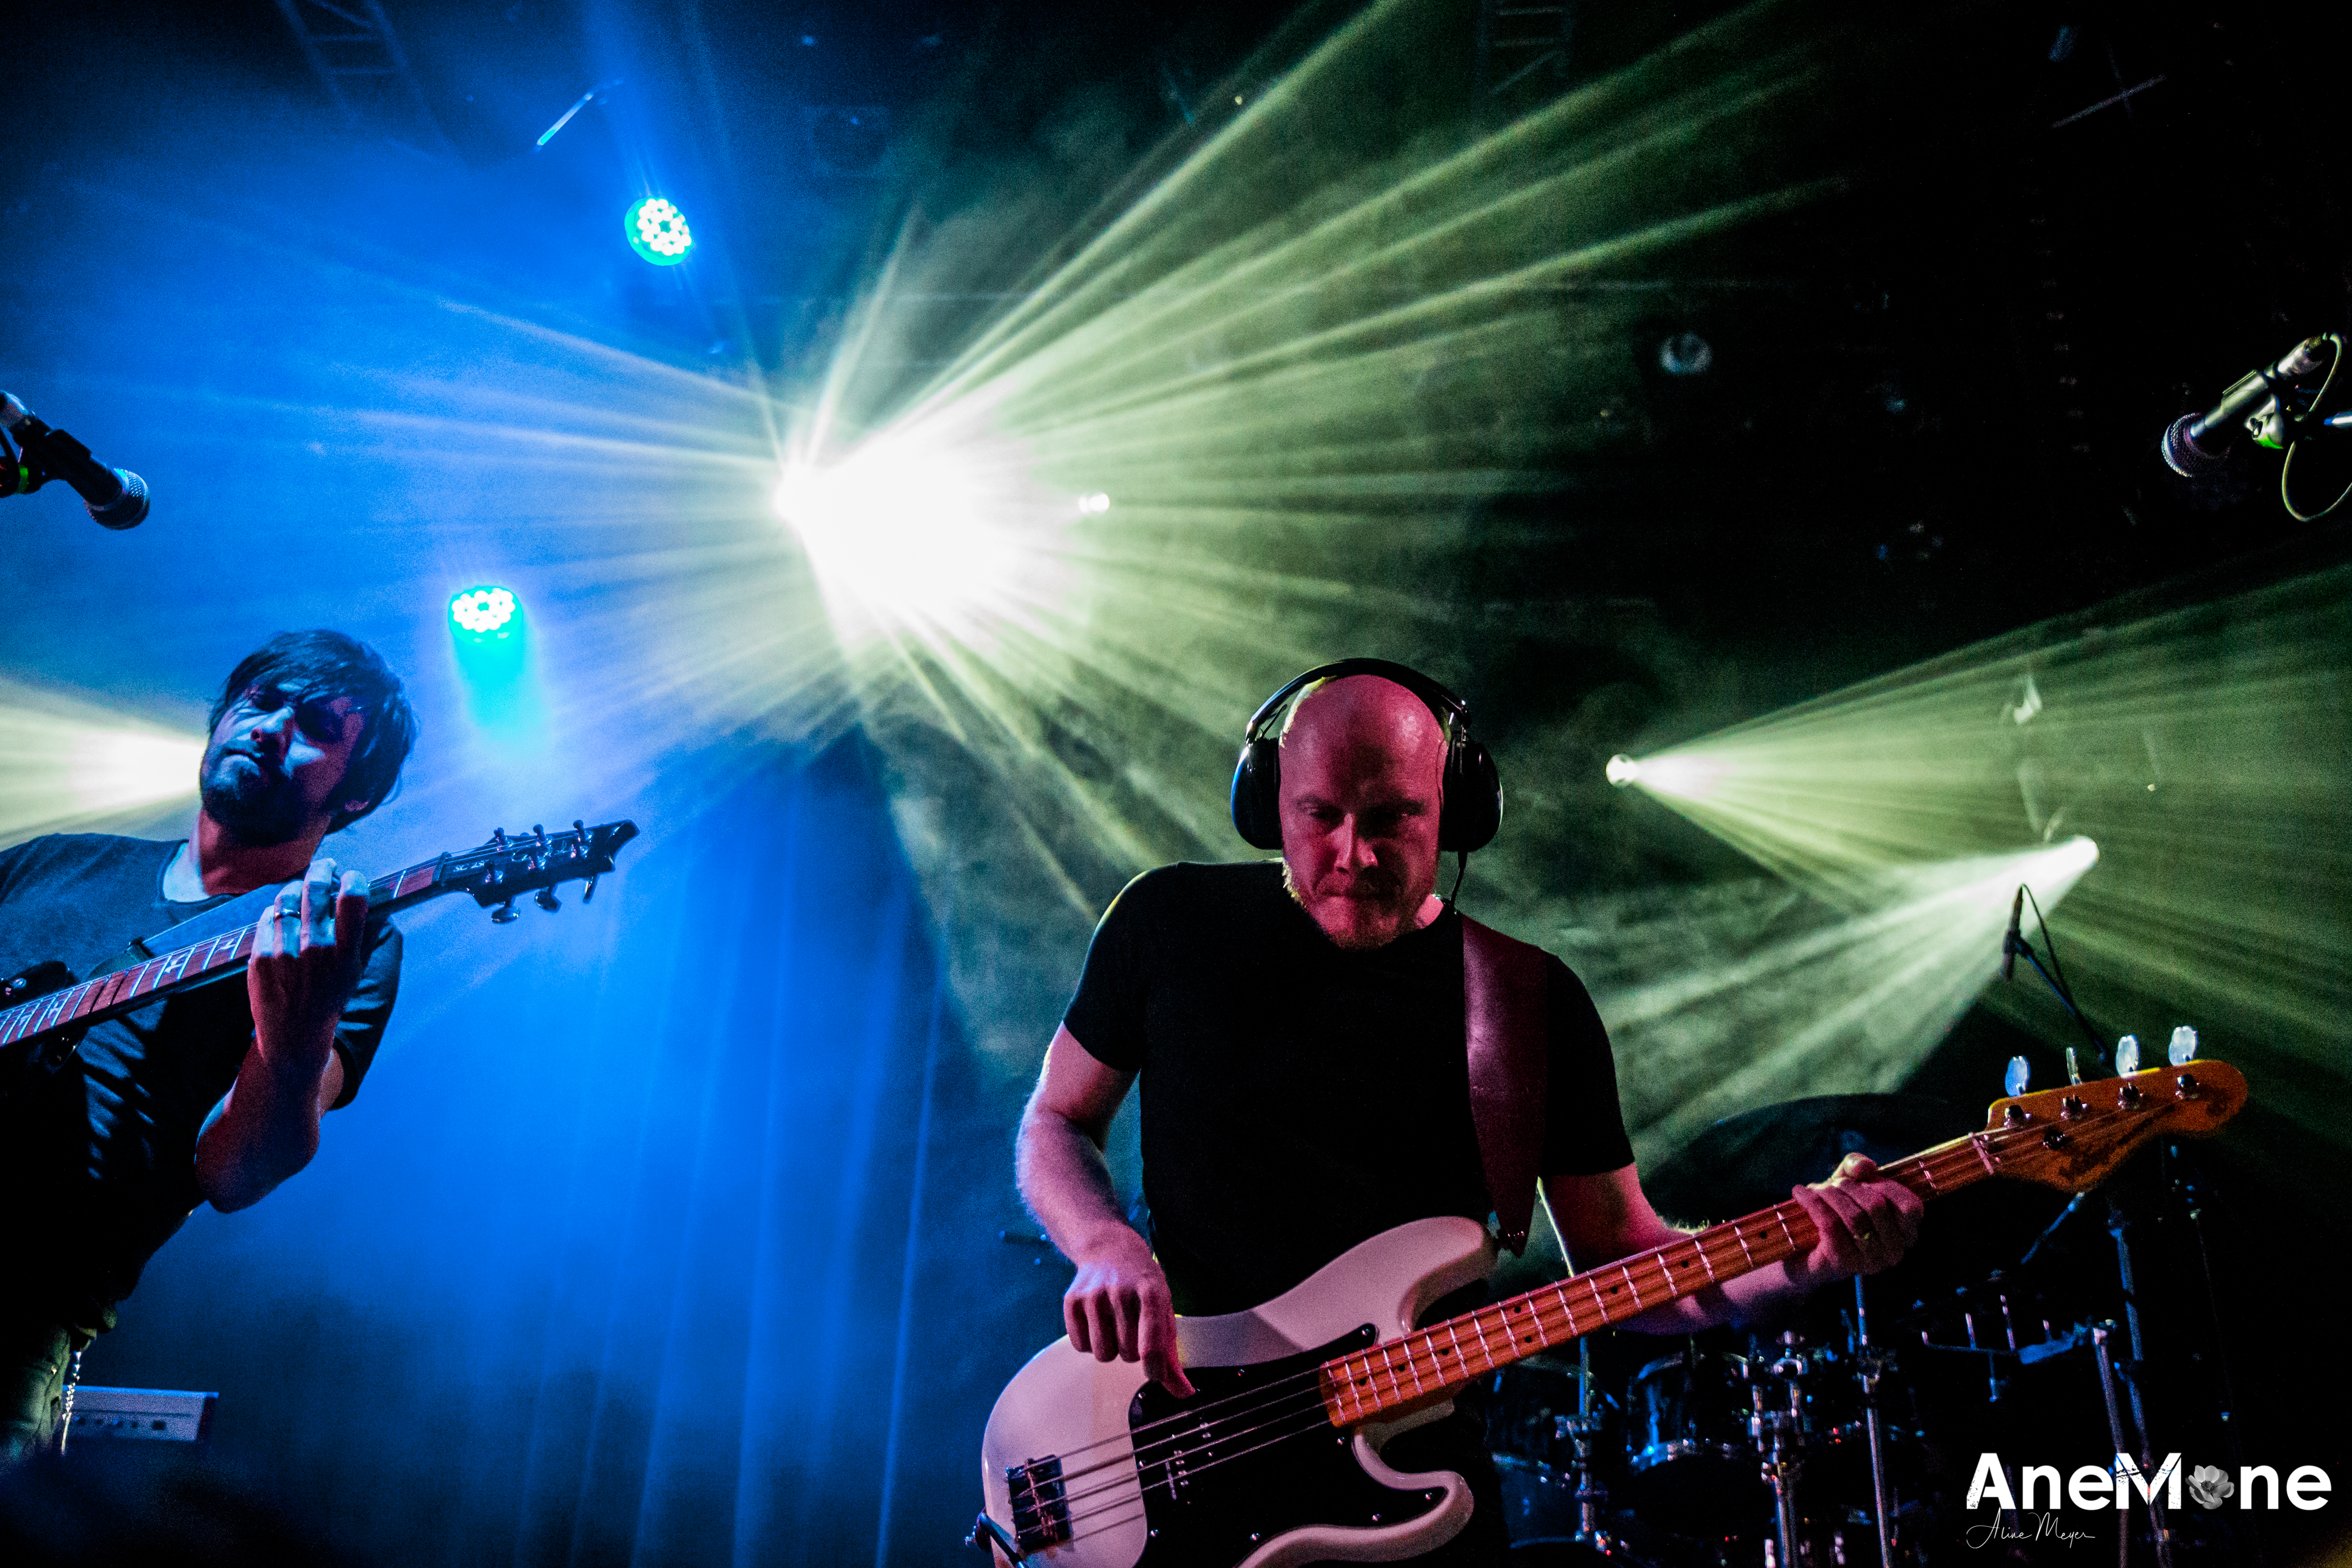 010217 - The Pineapple Thief - 3